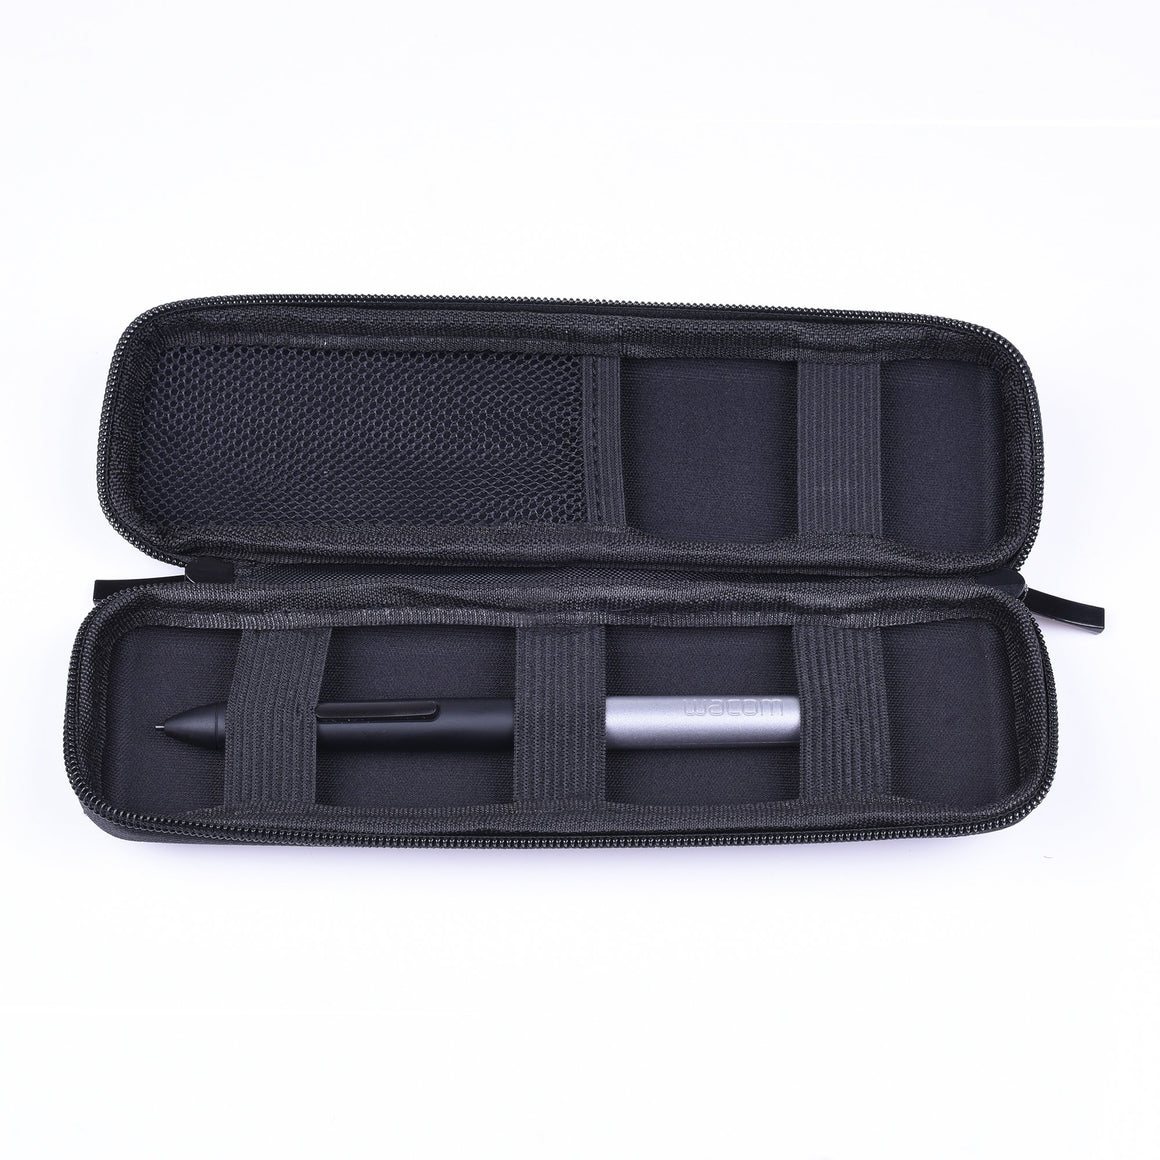 Cosmos Eva Hard Shell Pencil Case - Black